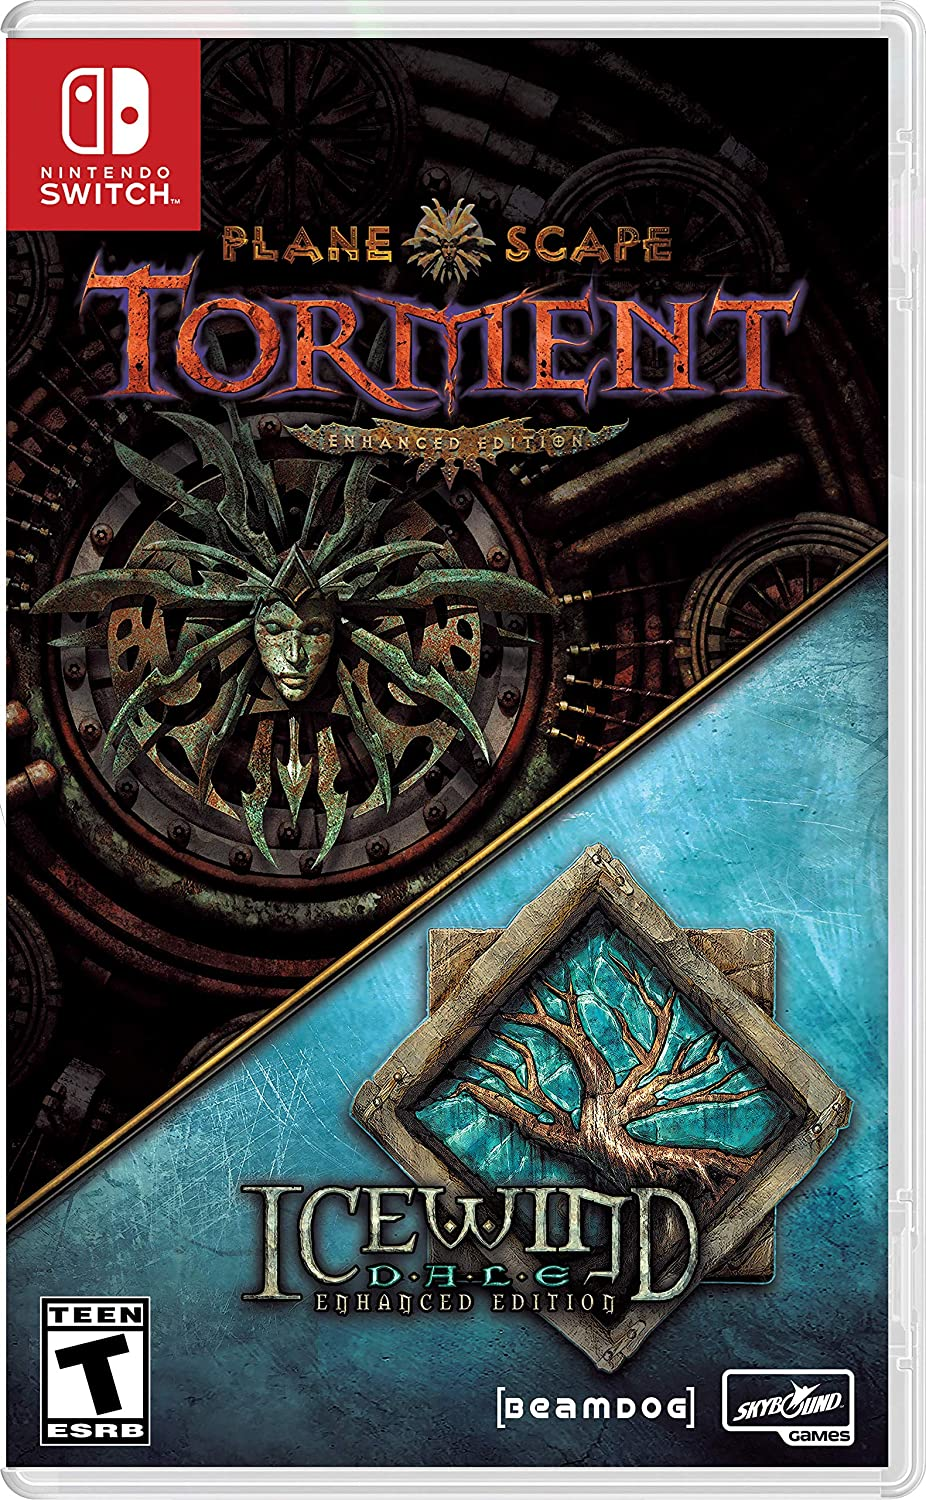 Planescape: Torment & Icewind